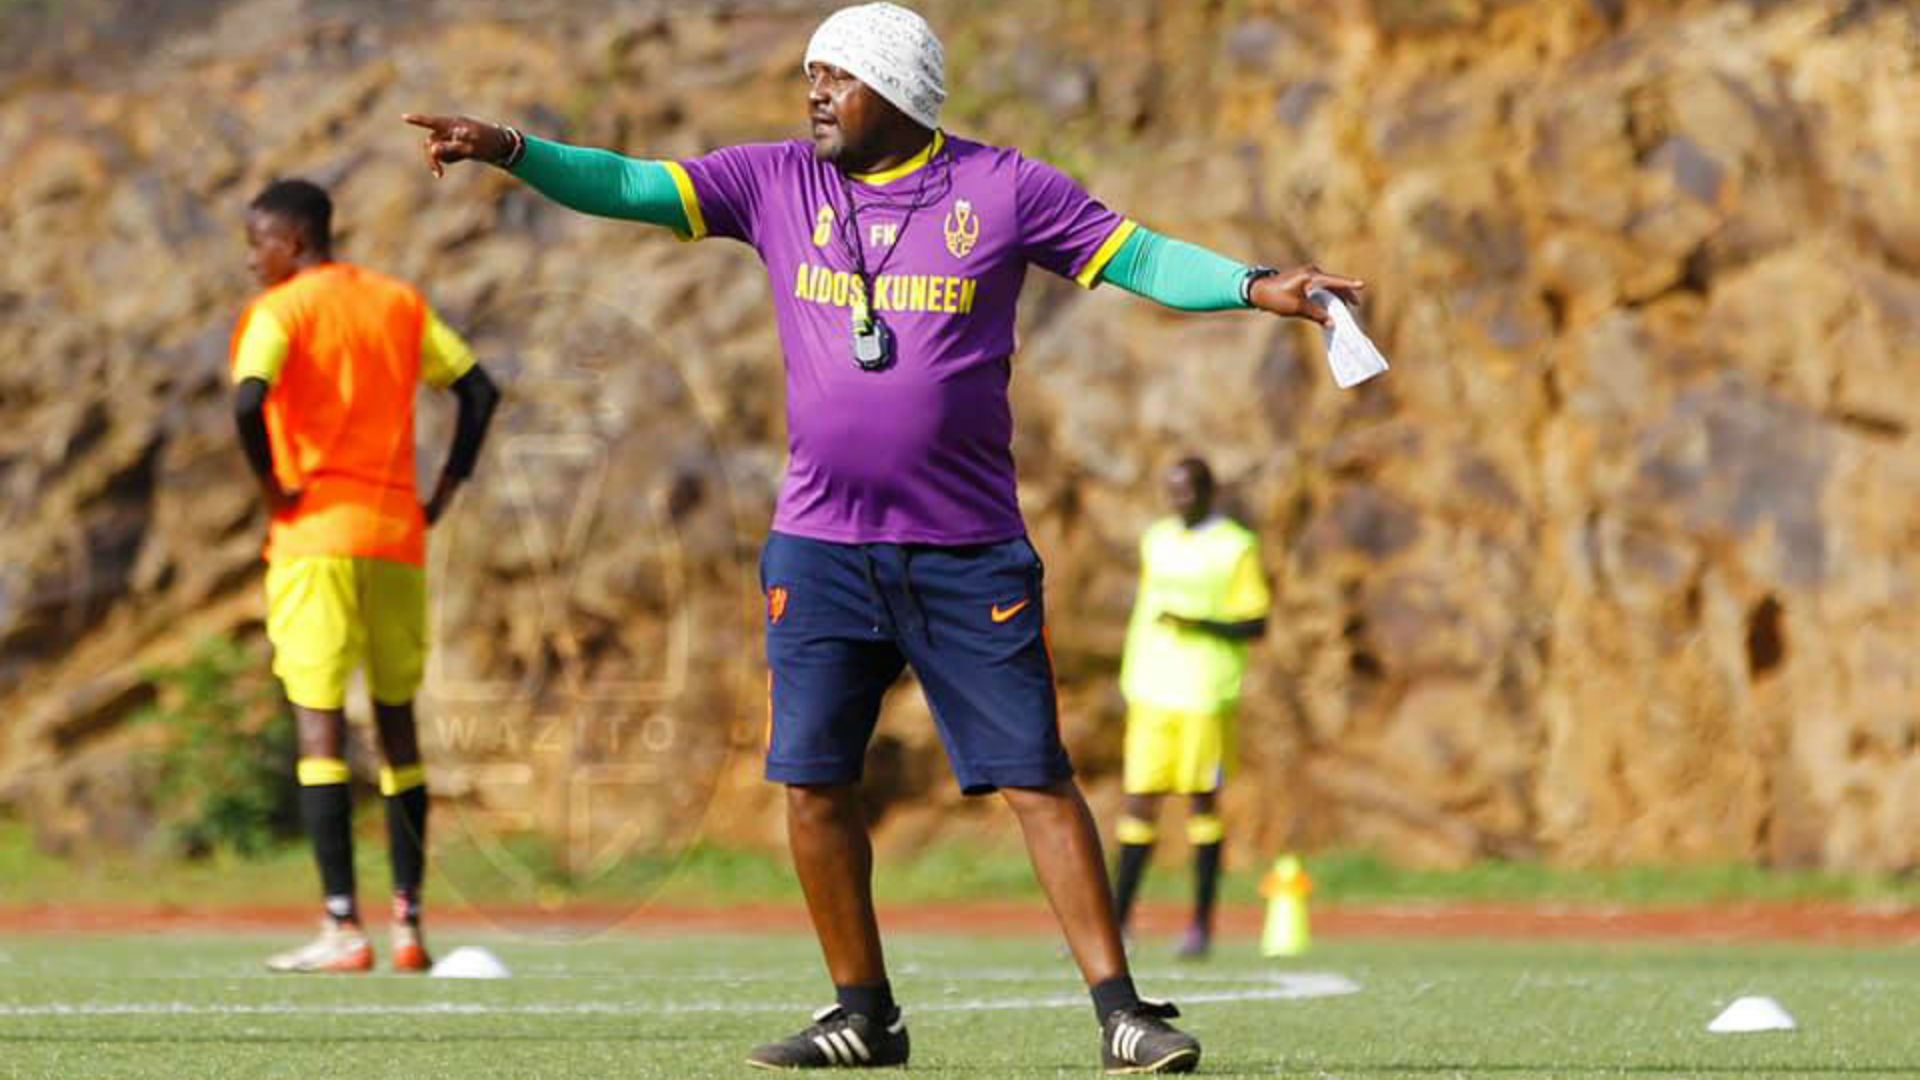 Wazito FC coach Kimanzi: I am not special